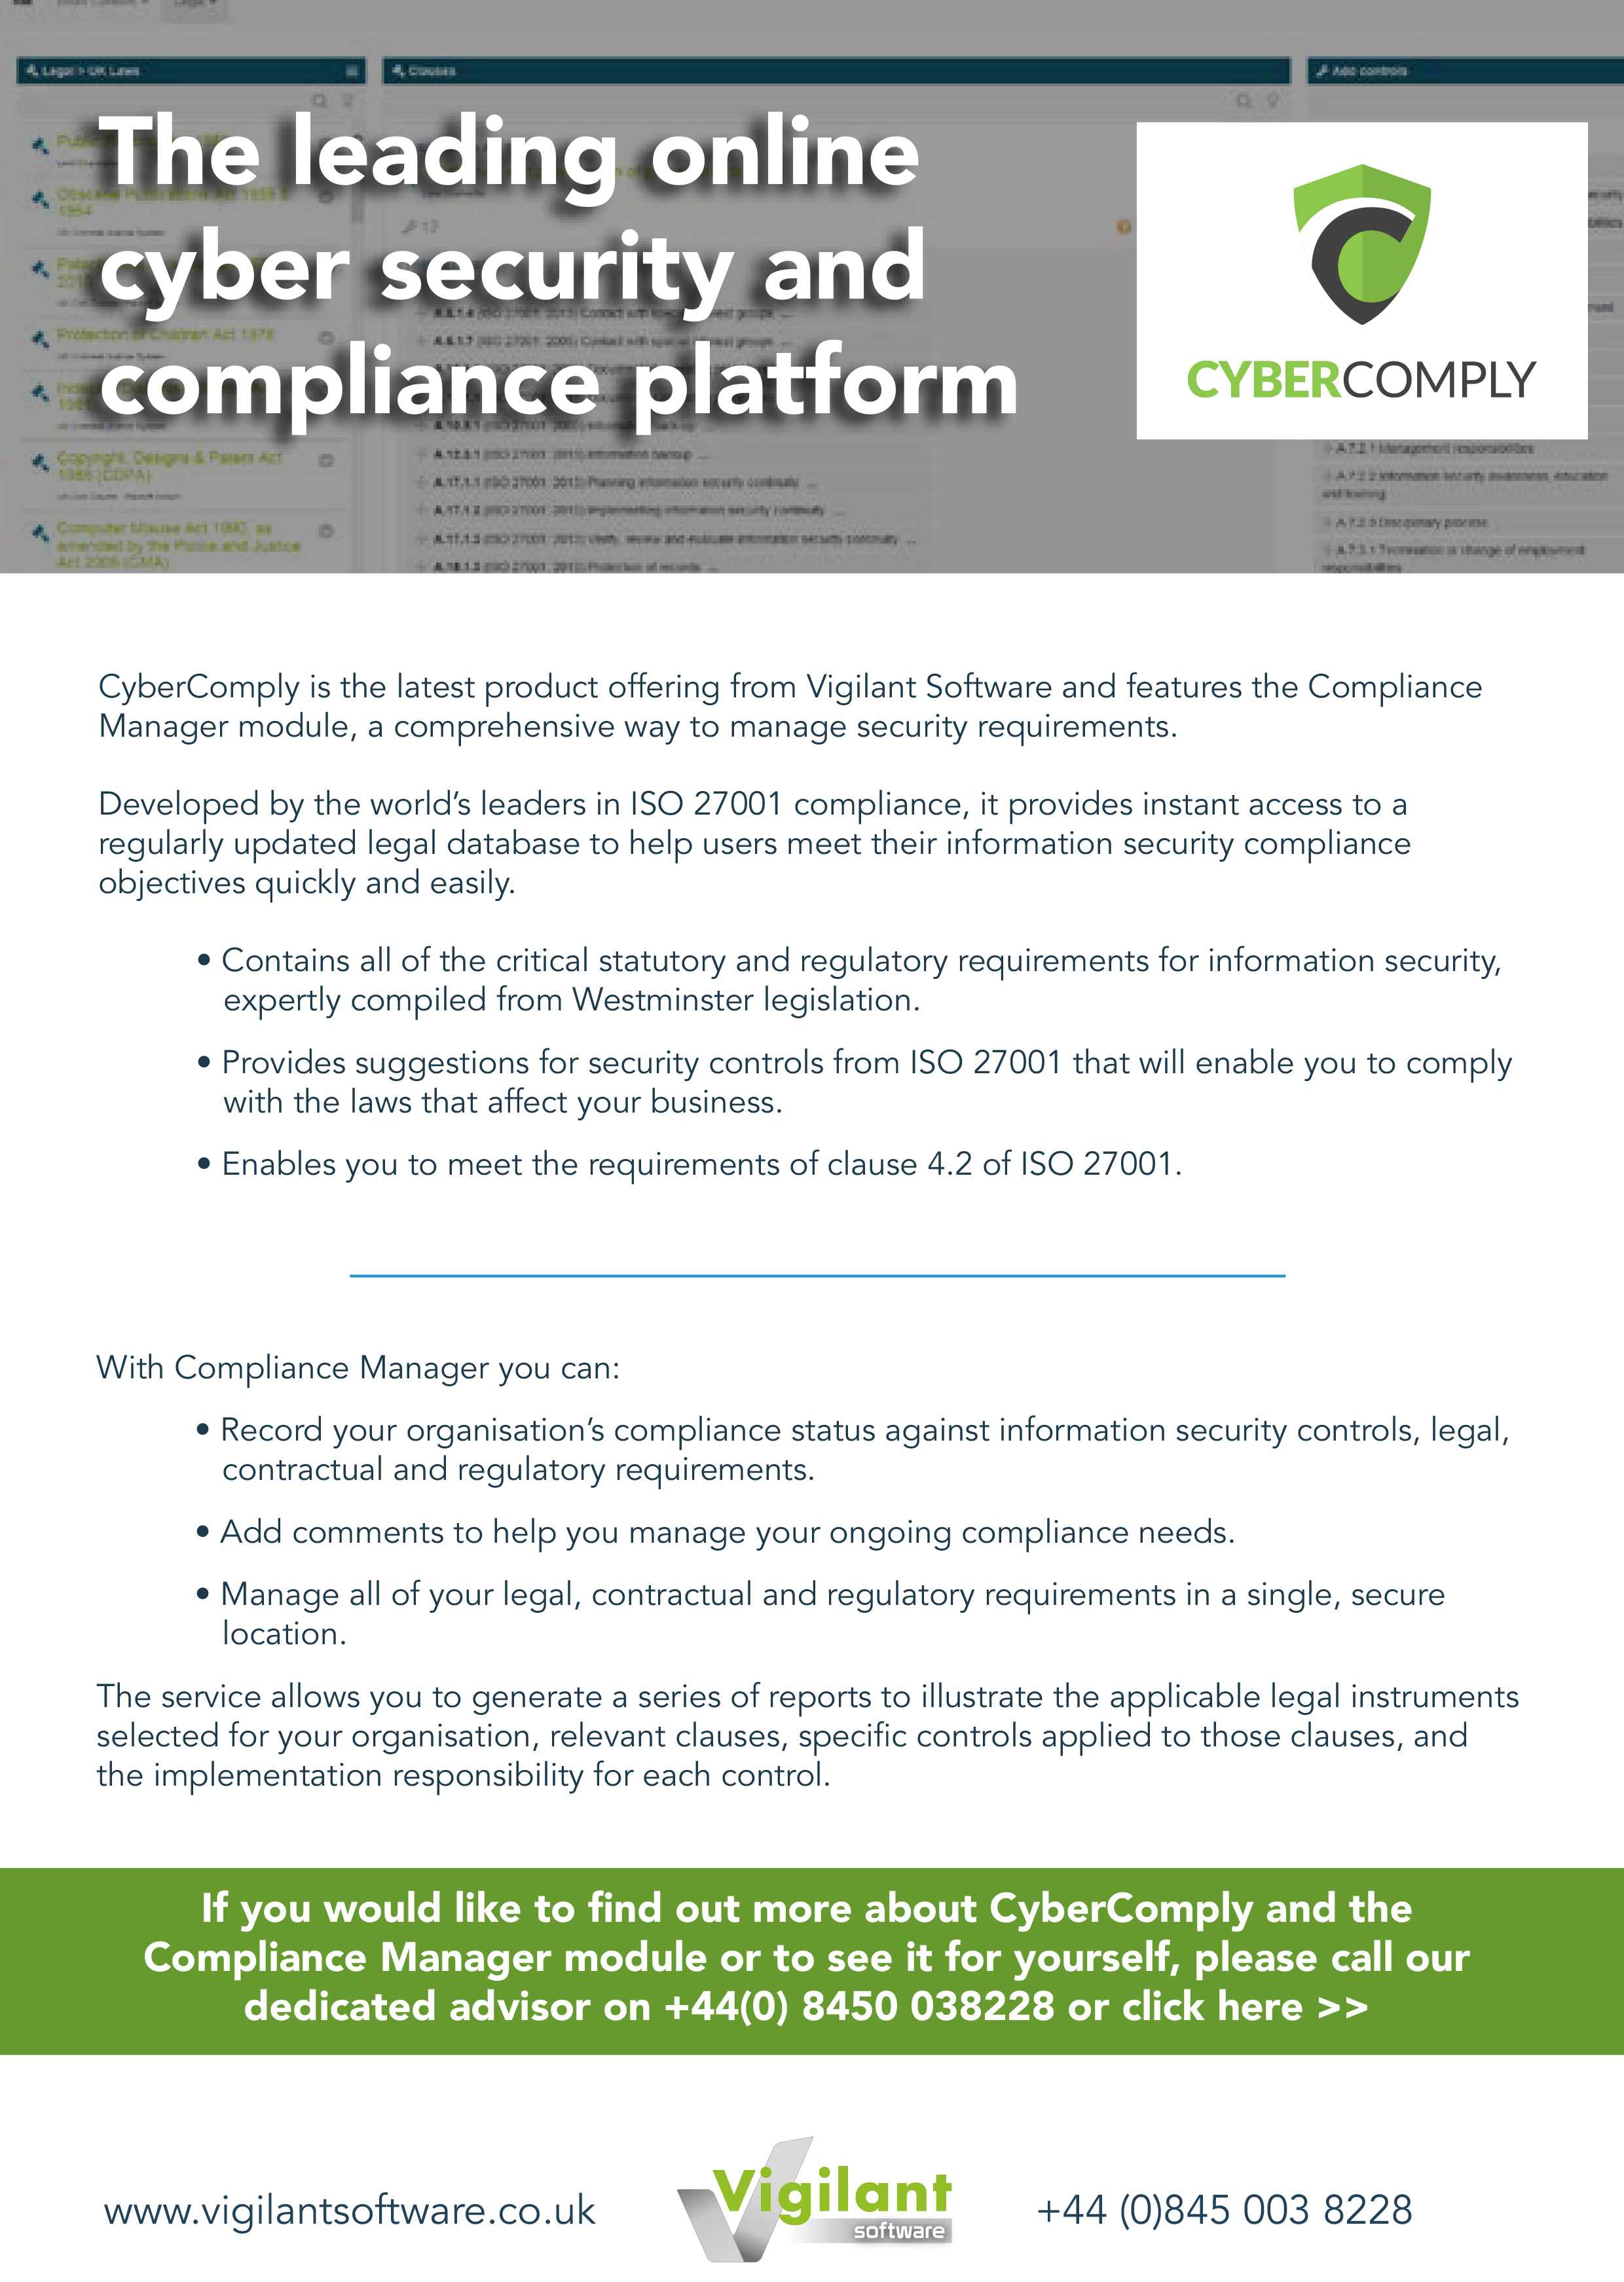 CyberComply the leading online cyber security and compliance platform